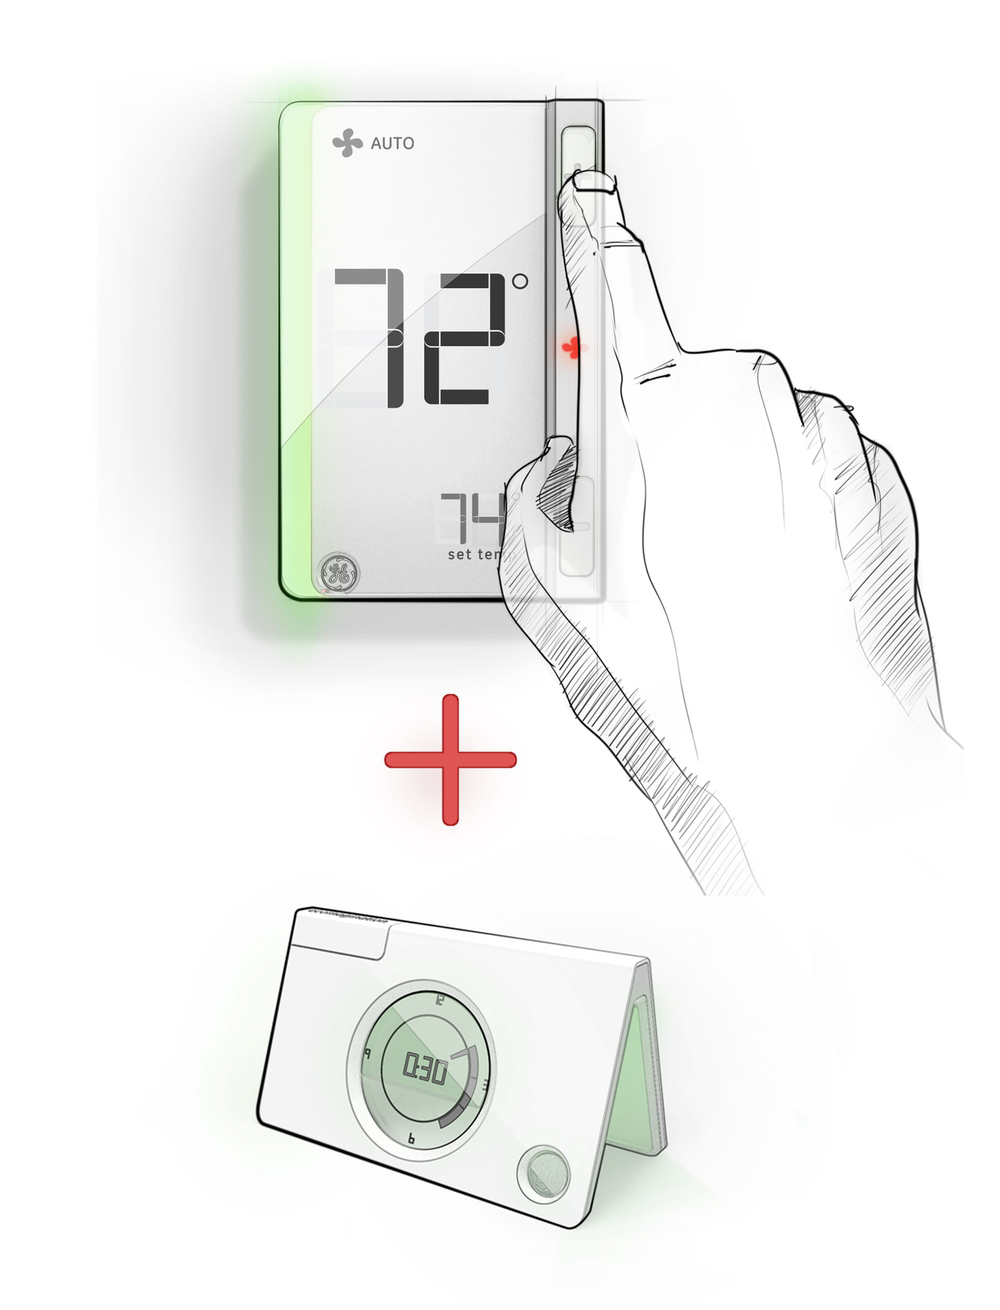 Reimagining-the-Thermostat-2.jpg